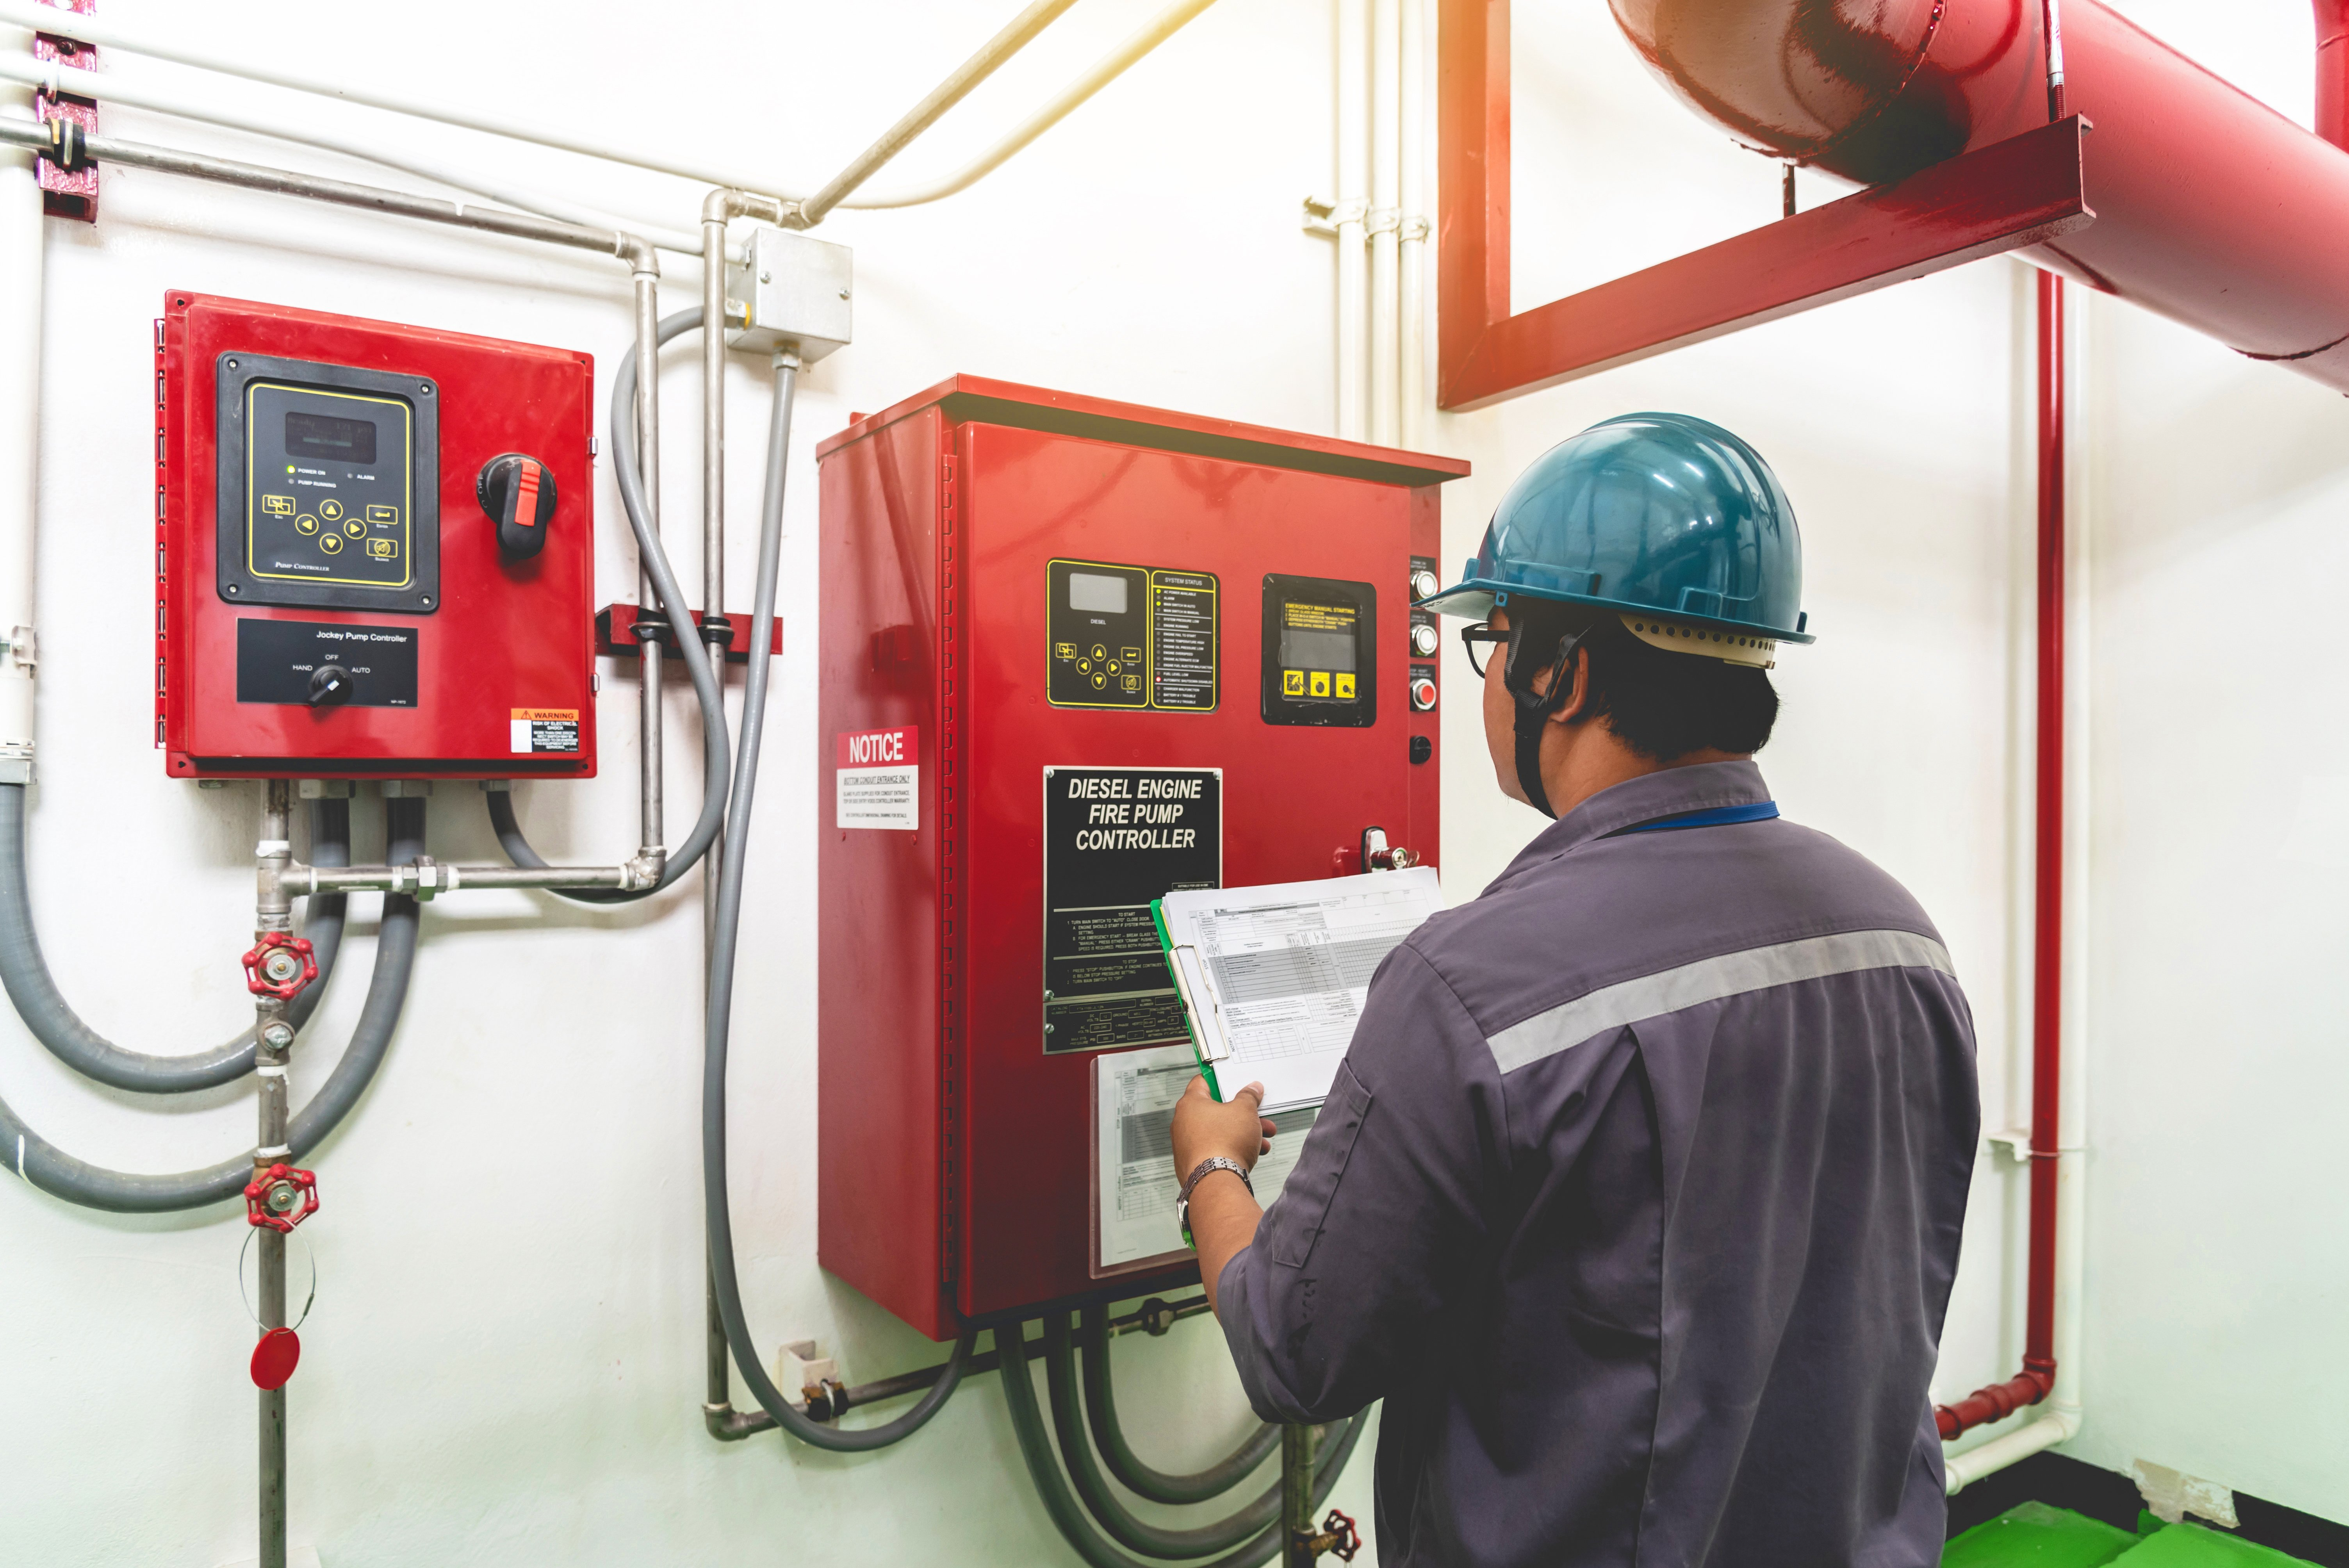 Worker looking at fire system control panel